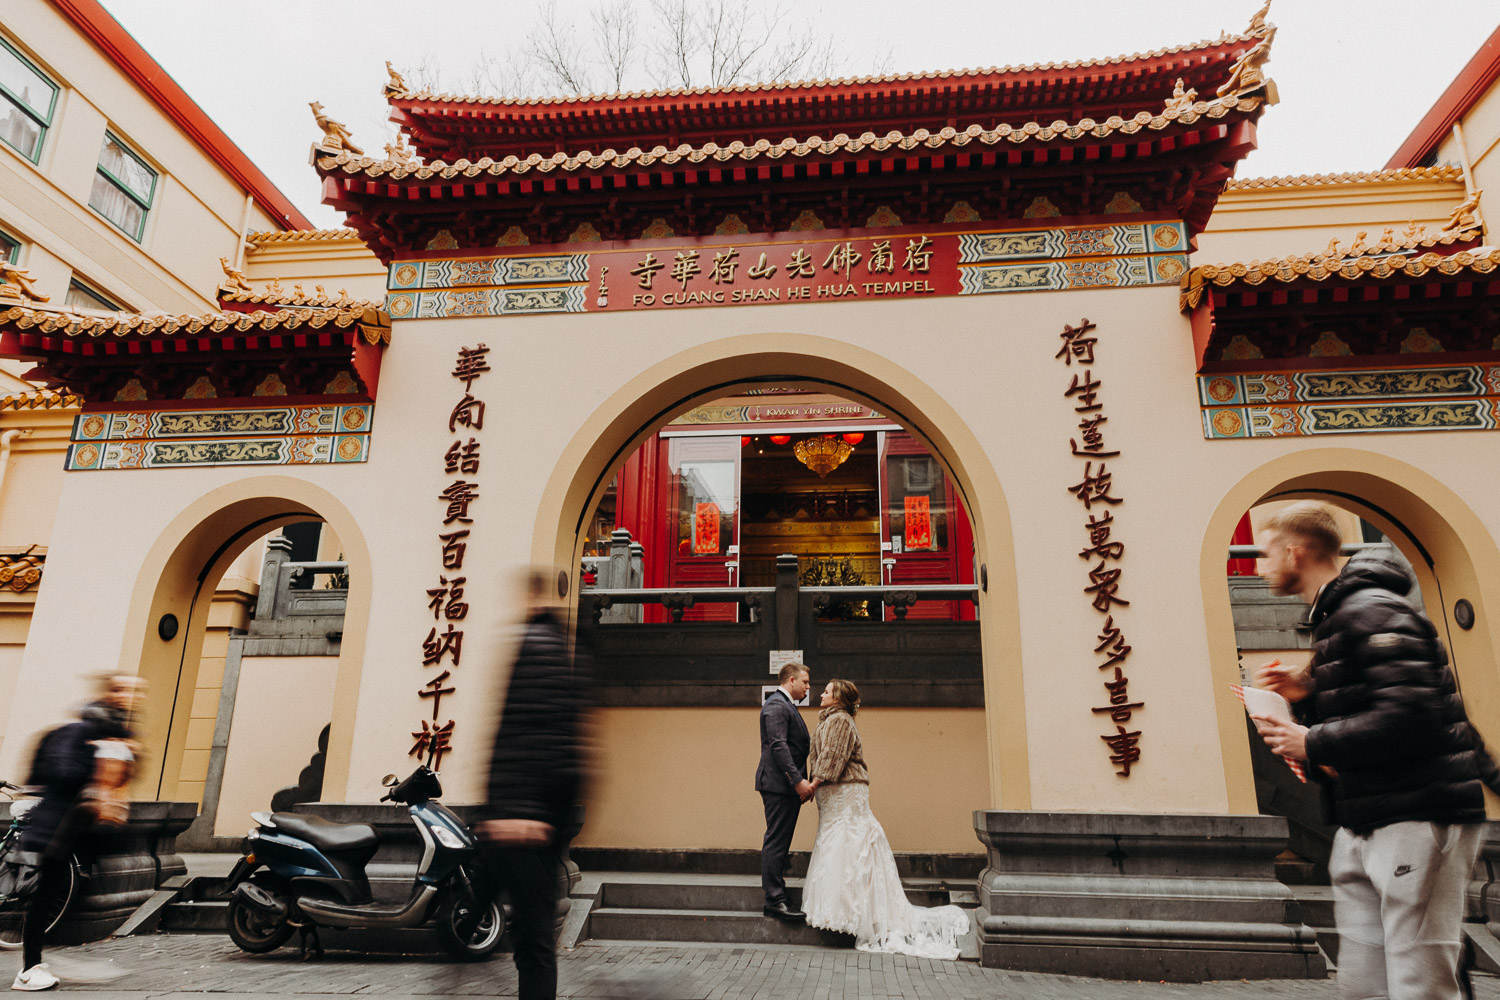 Wedding couple photoshoot in front of He Hua Tempel or Fo Guang Shan Holland Tempel in China town Amsterdam.